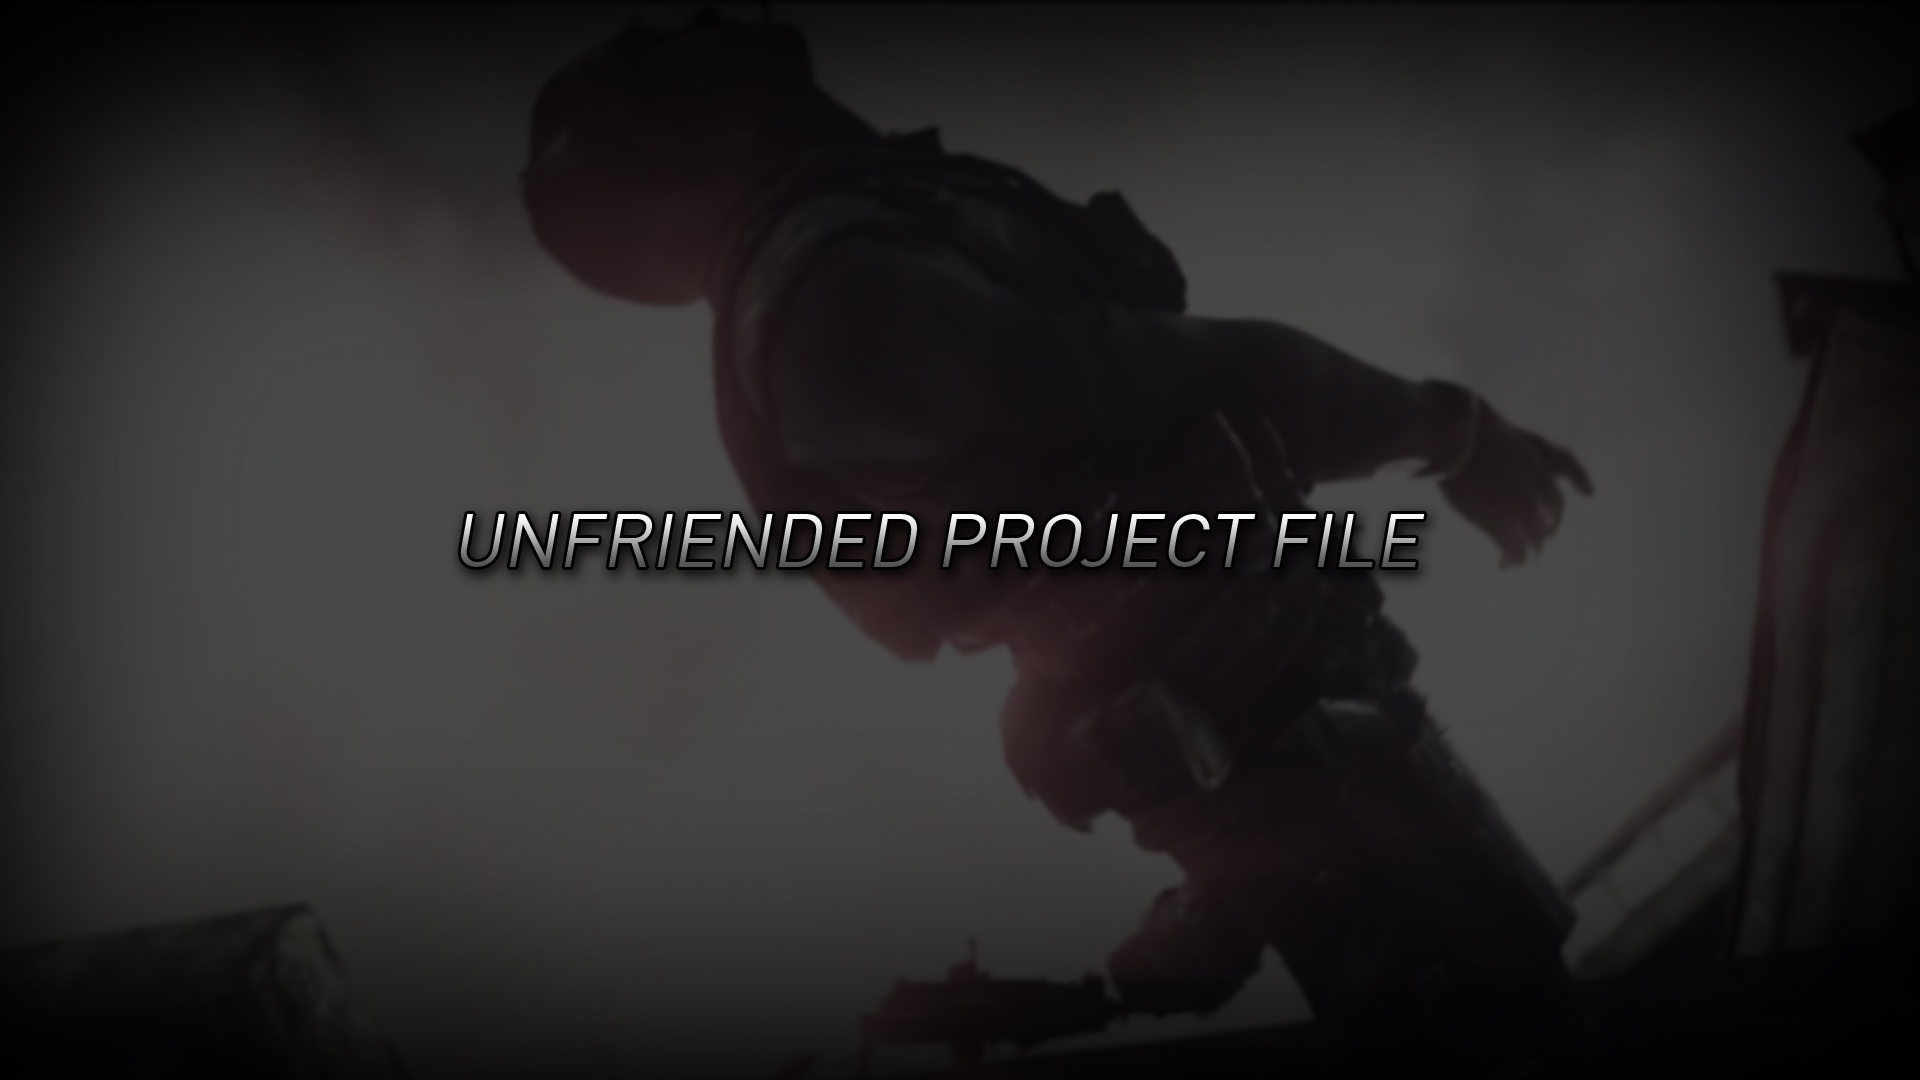 Unfriended Project Files (AAE + SV)